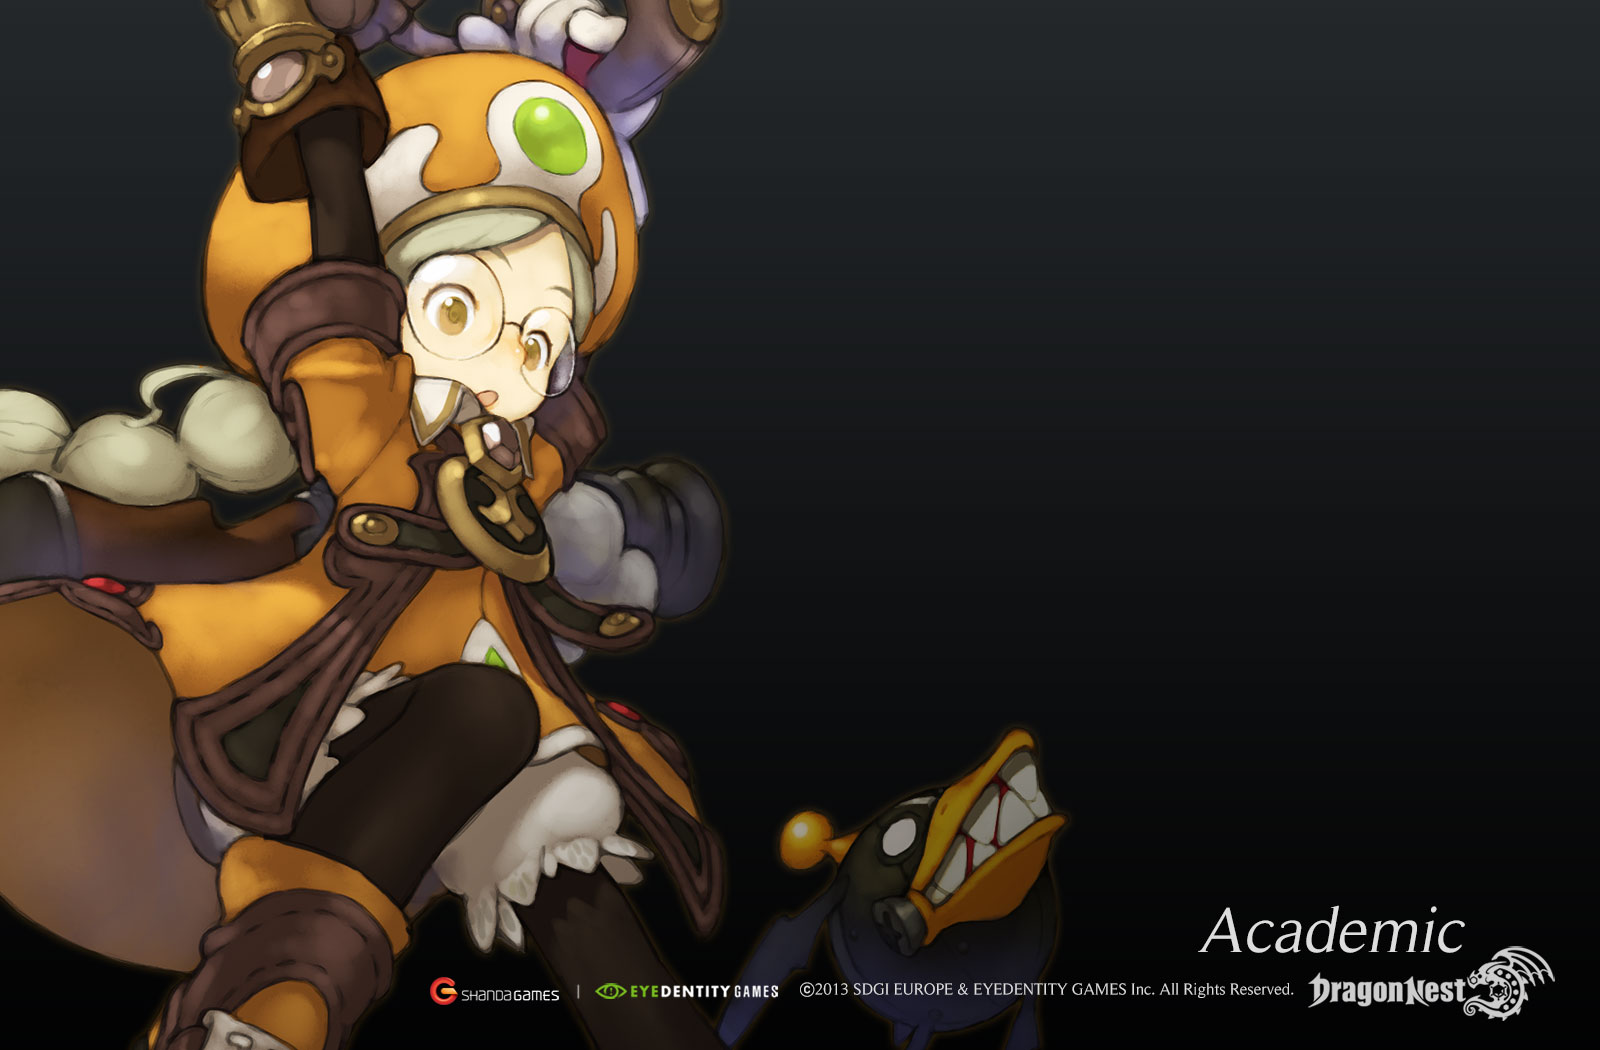 Download Dragon Nest Europe to Play Online Action RPG [1600x1050